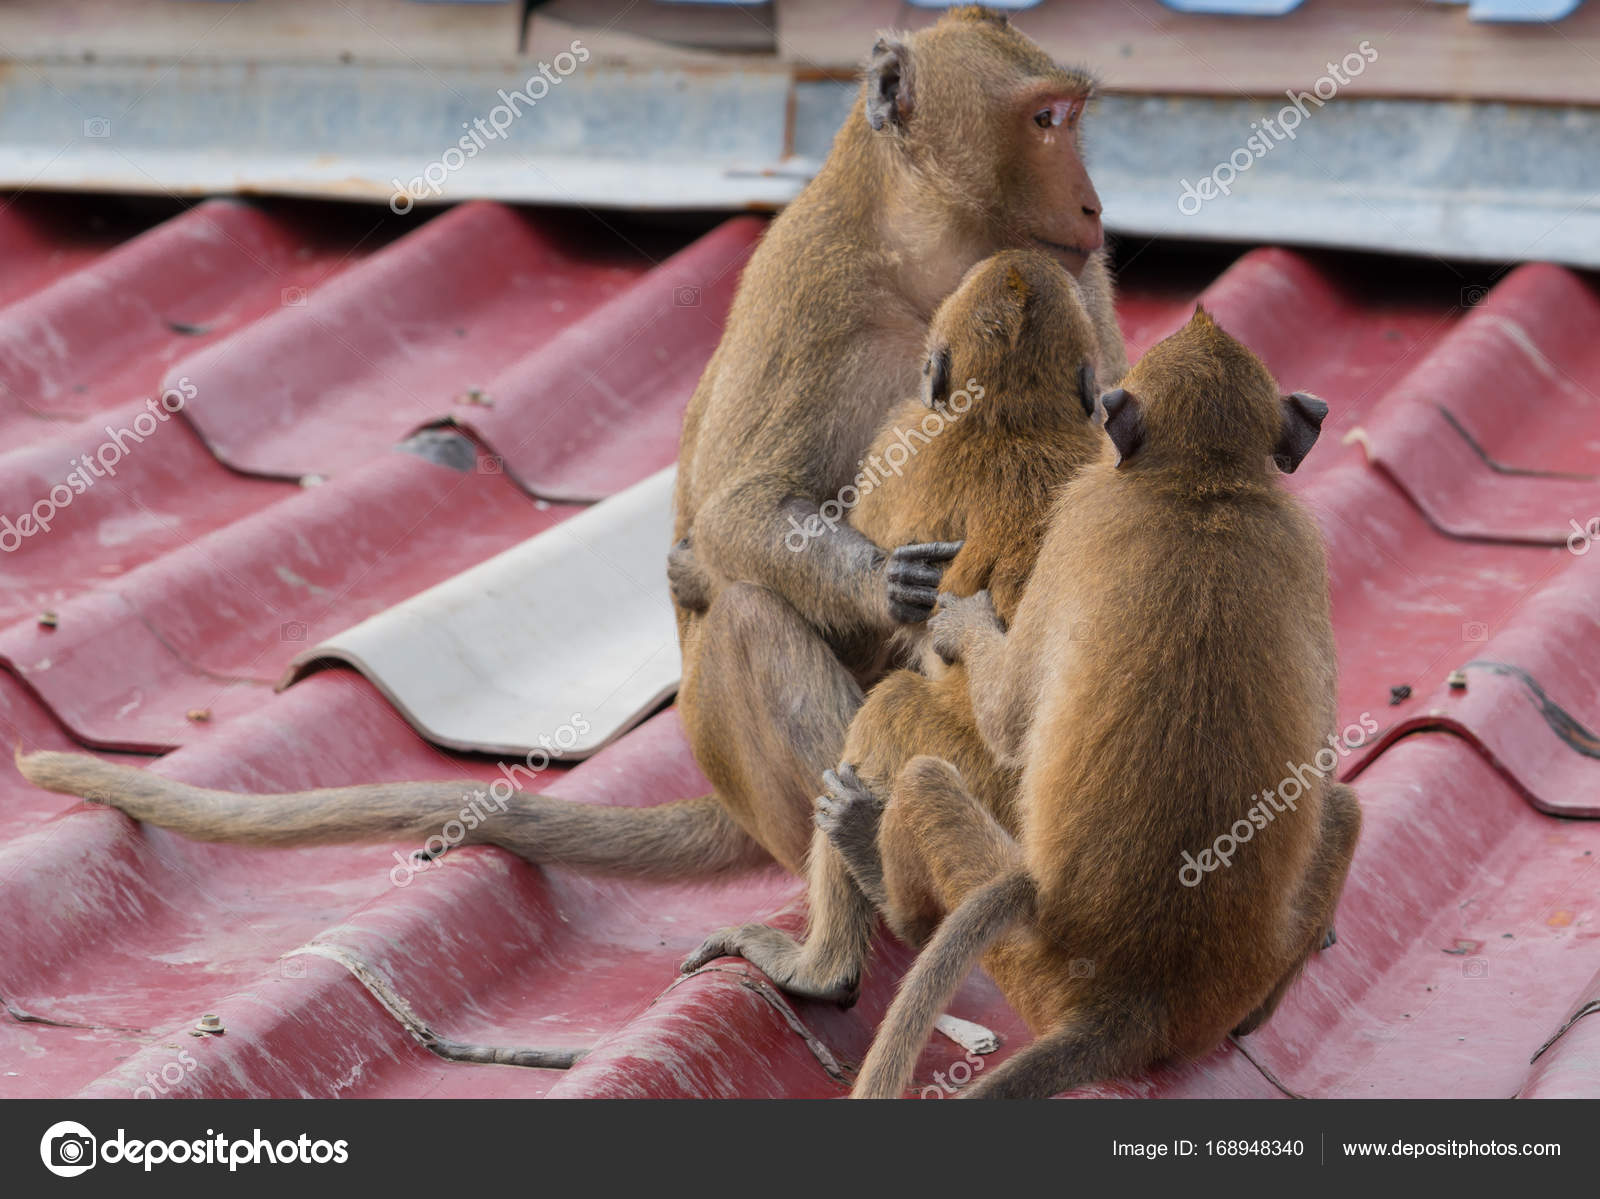 Picture of monkey having sex was